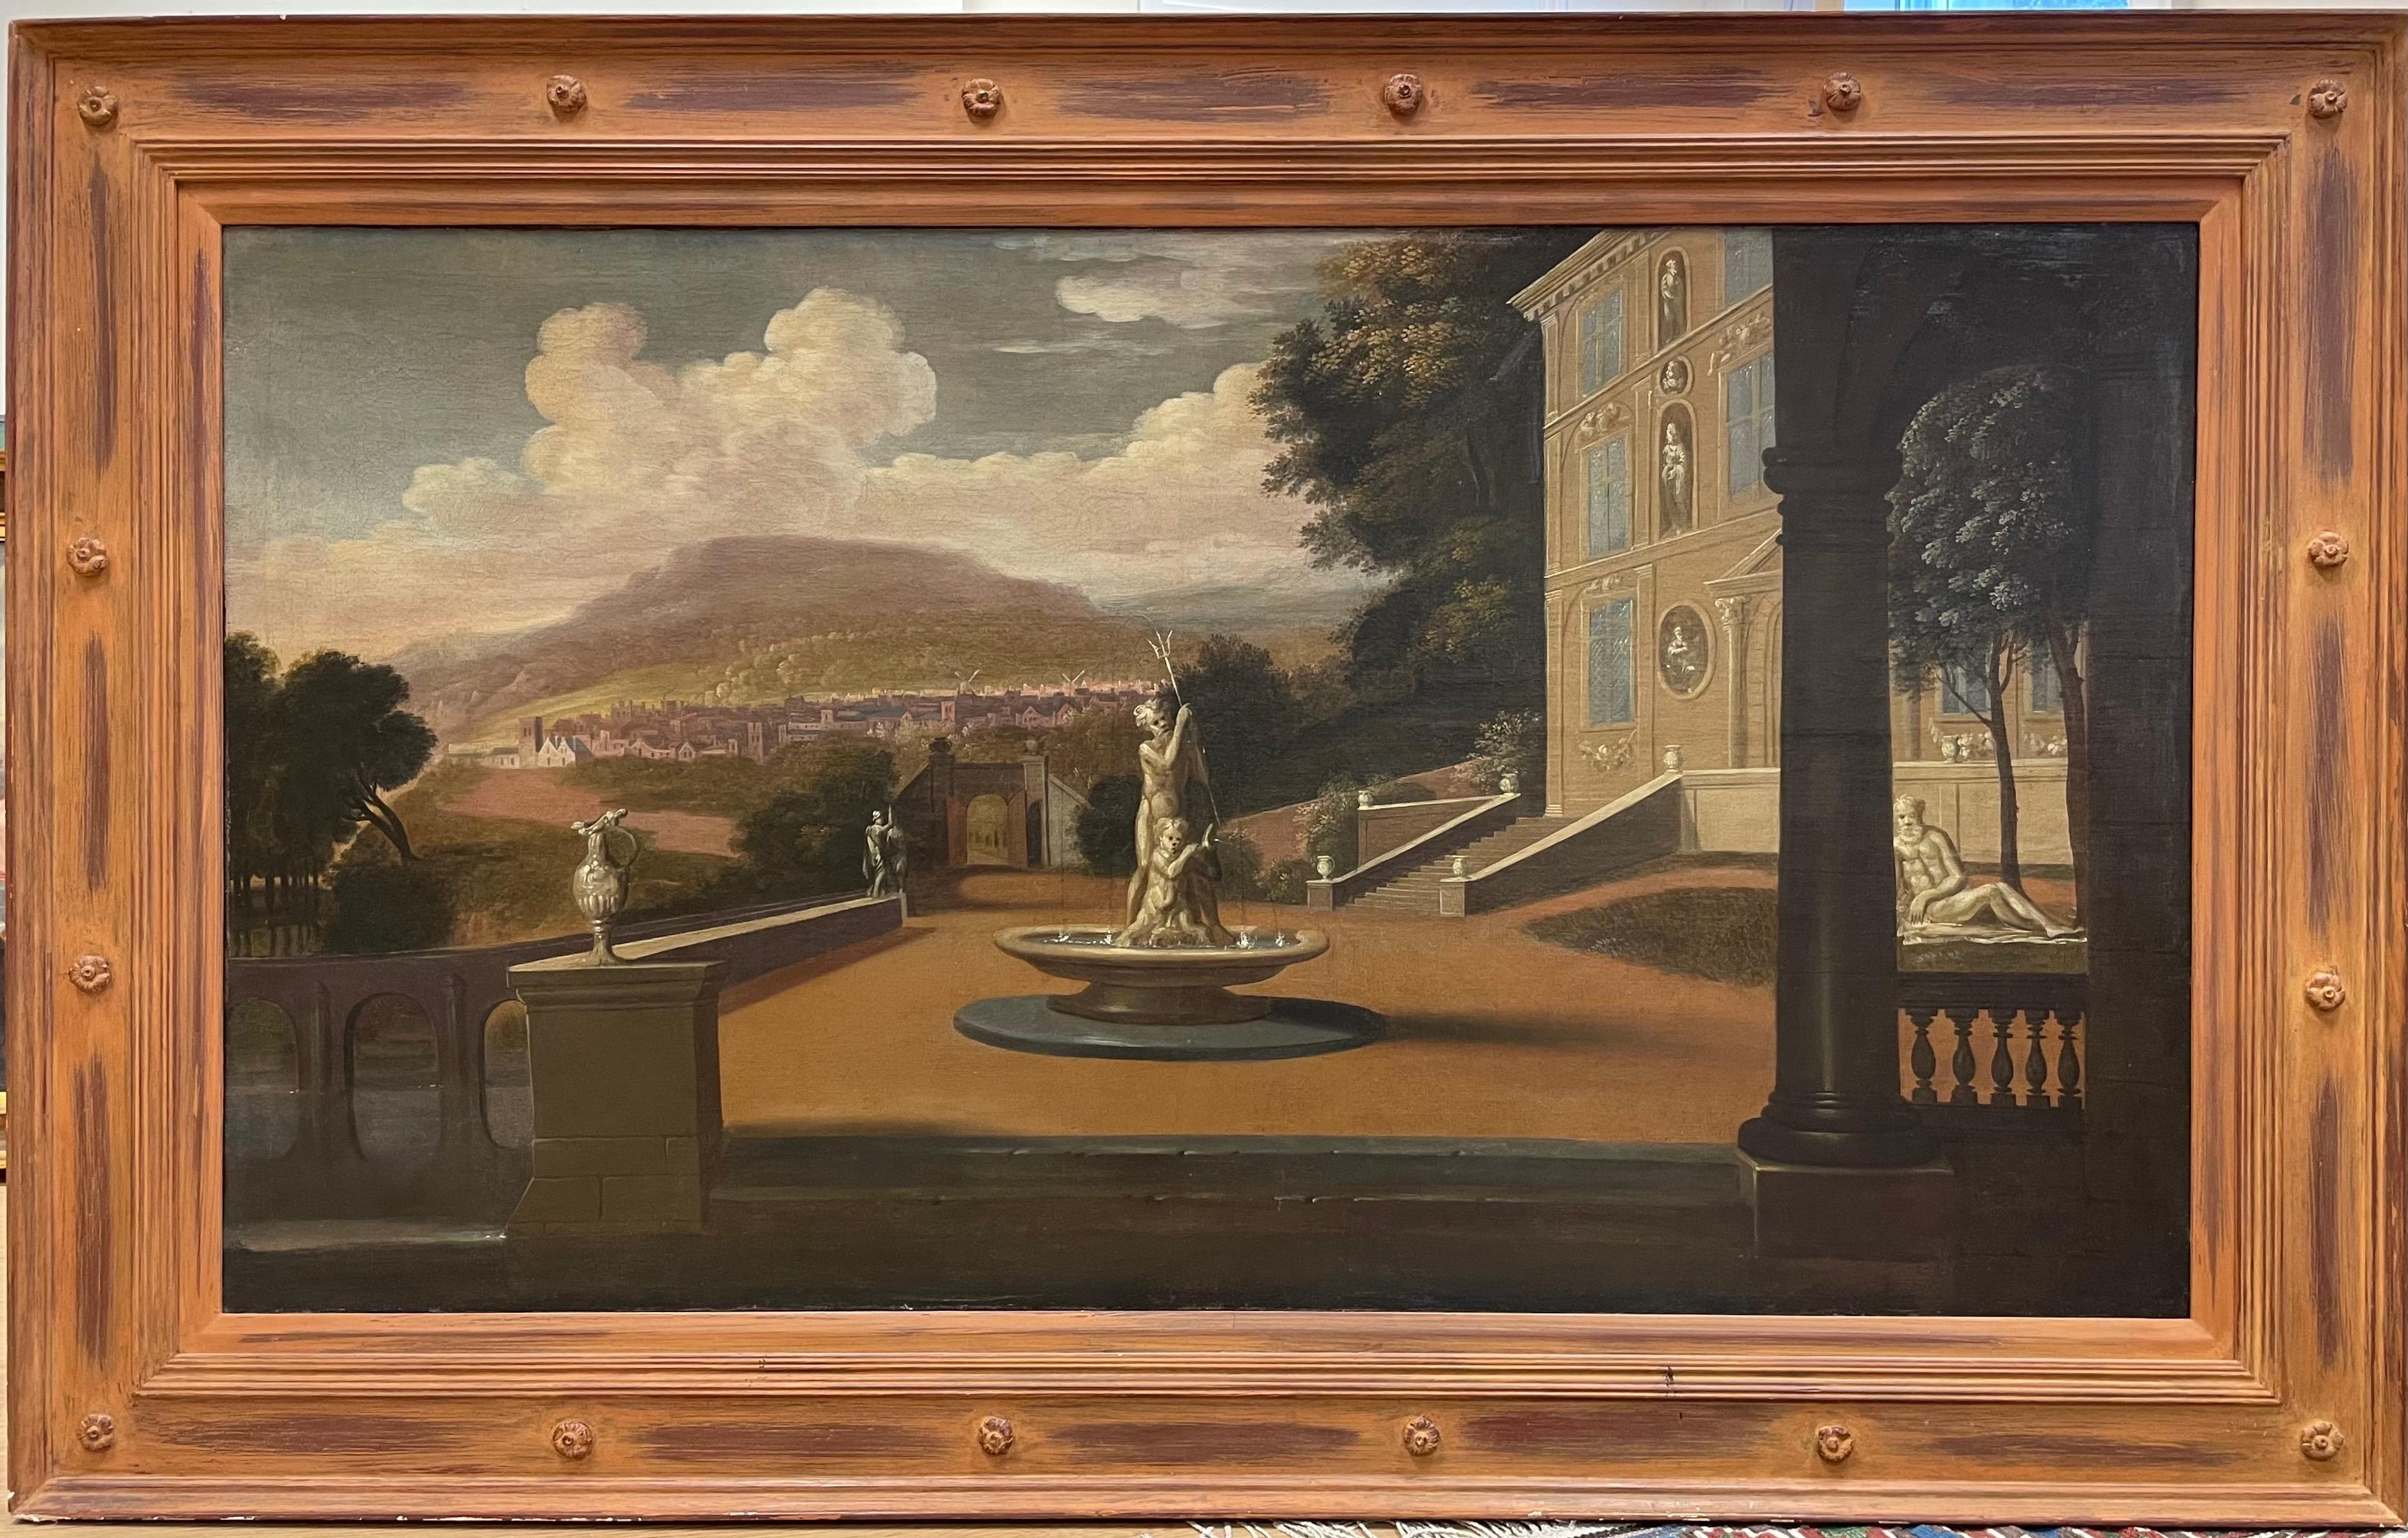 Huge Early 1700's Italian Old Master Oil Painting Neo Classical Palace Landscape